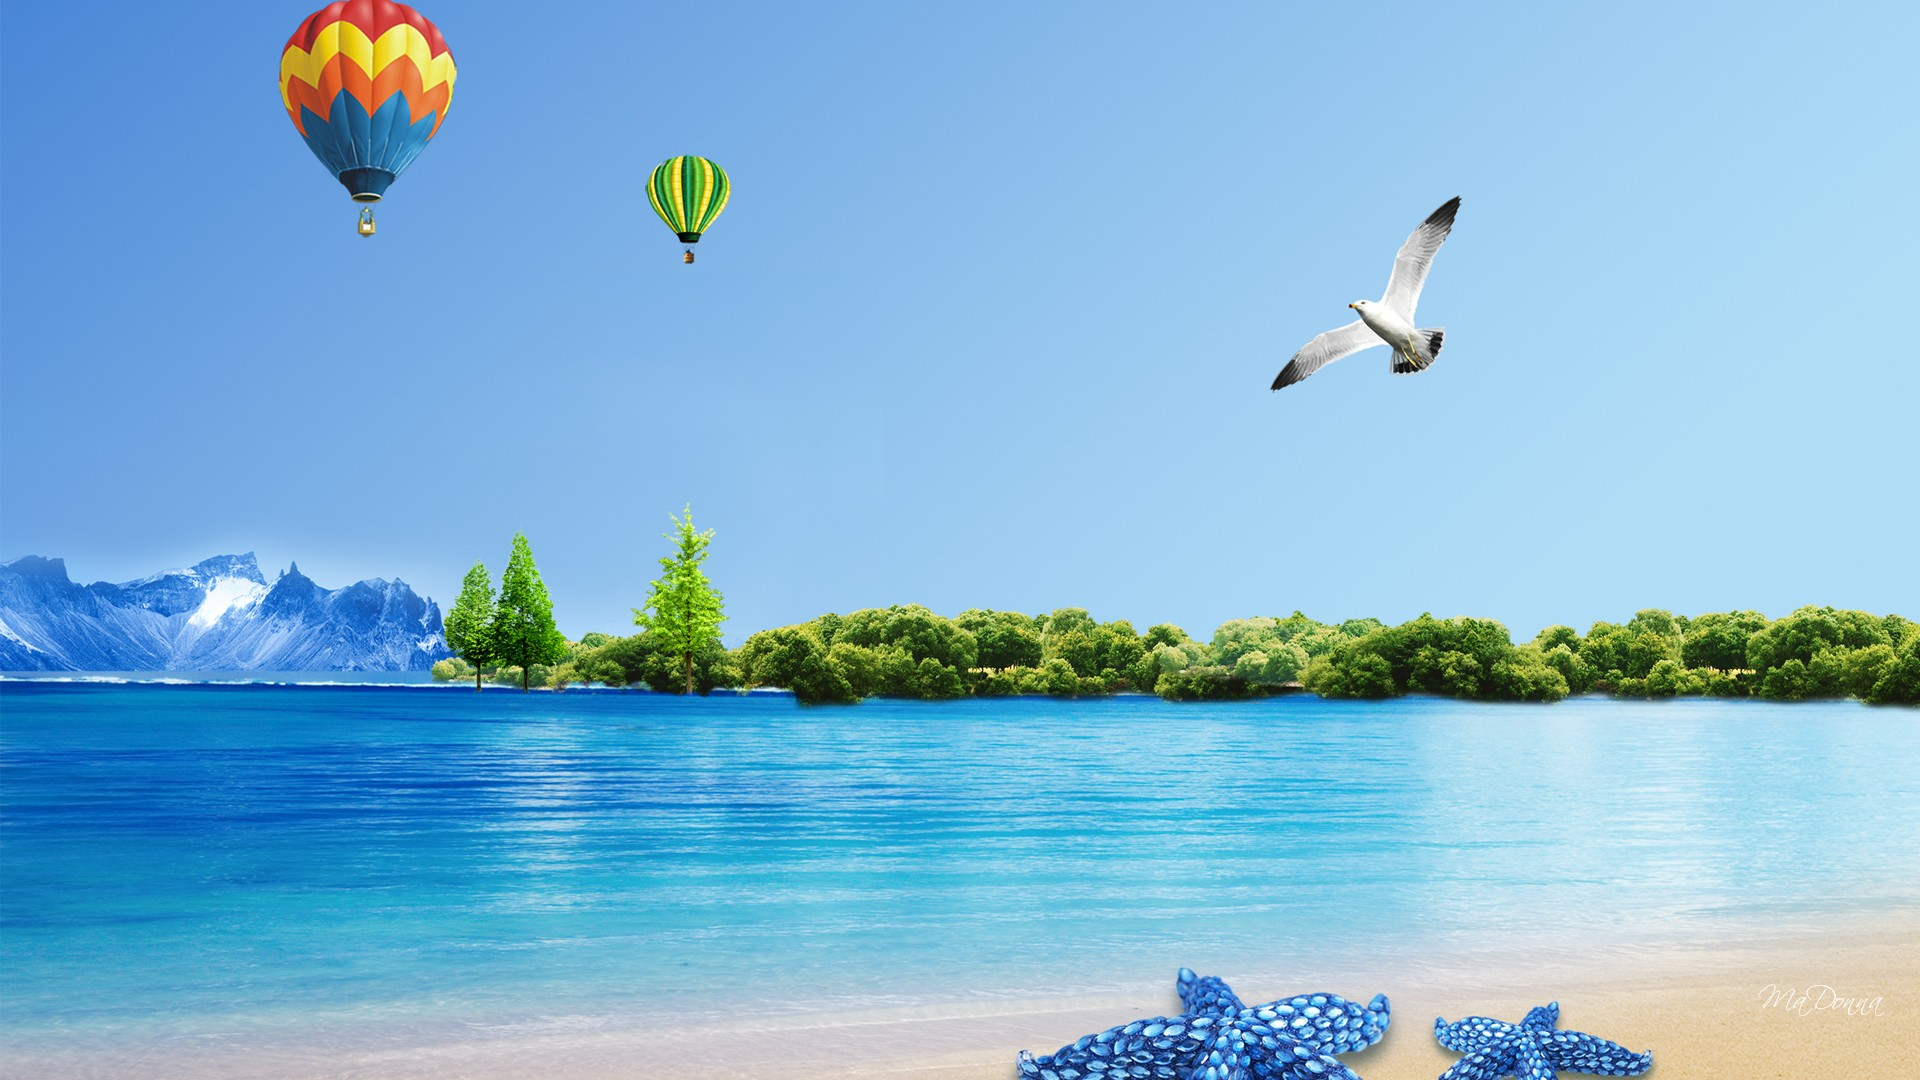 Download Summer Backgrounds Wallpaper pictures in high definition or 1920x1080